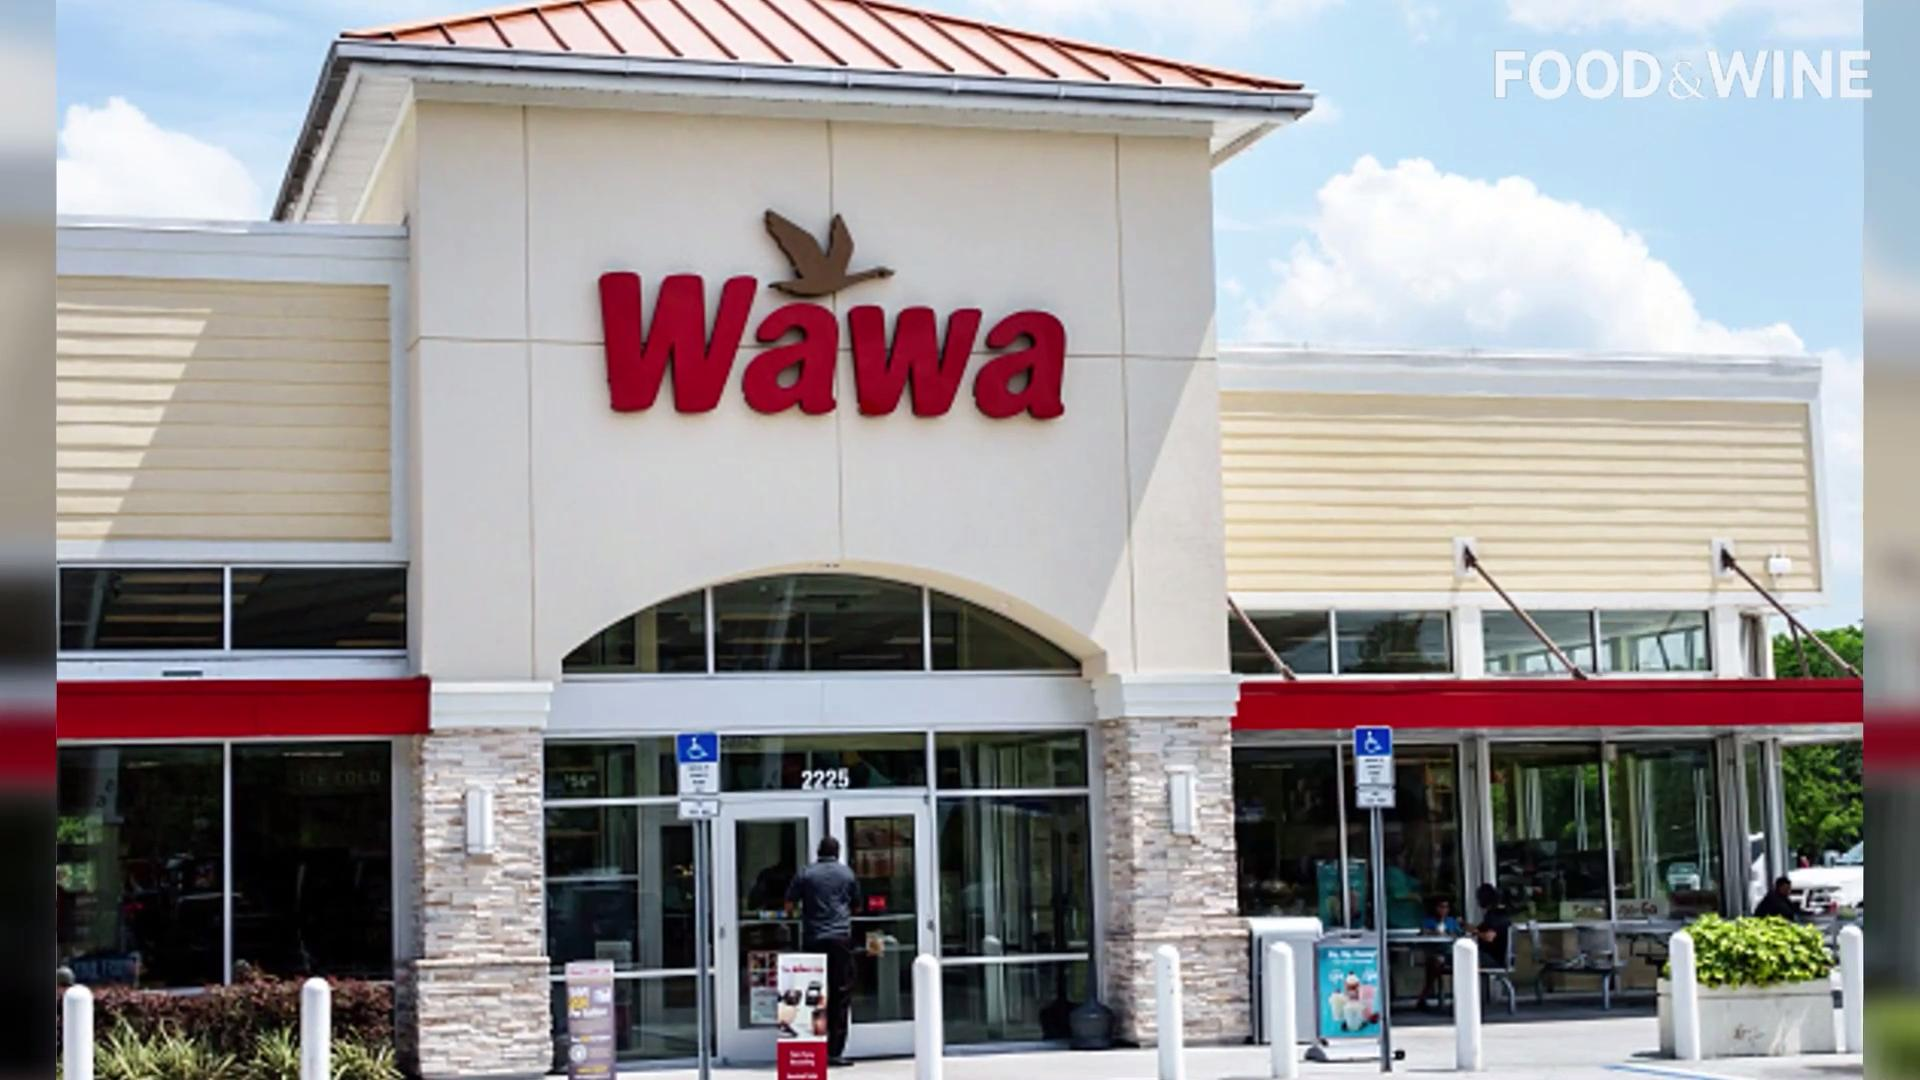 World\'s Largest Wawa Set to Open in Philadelphia | Food & Wine